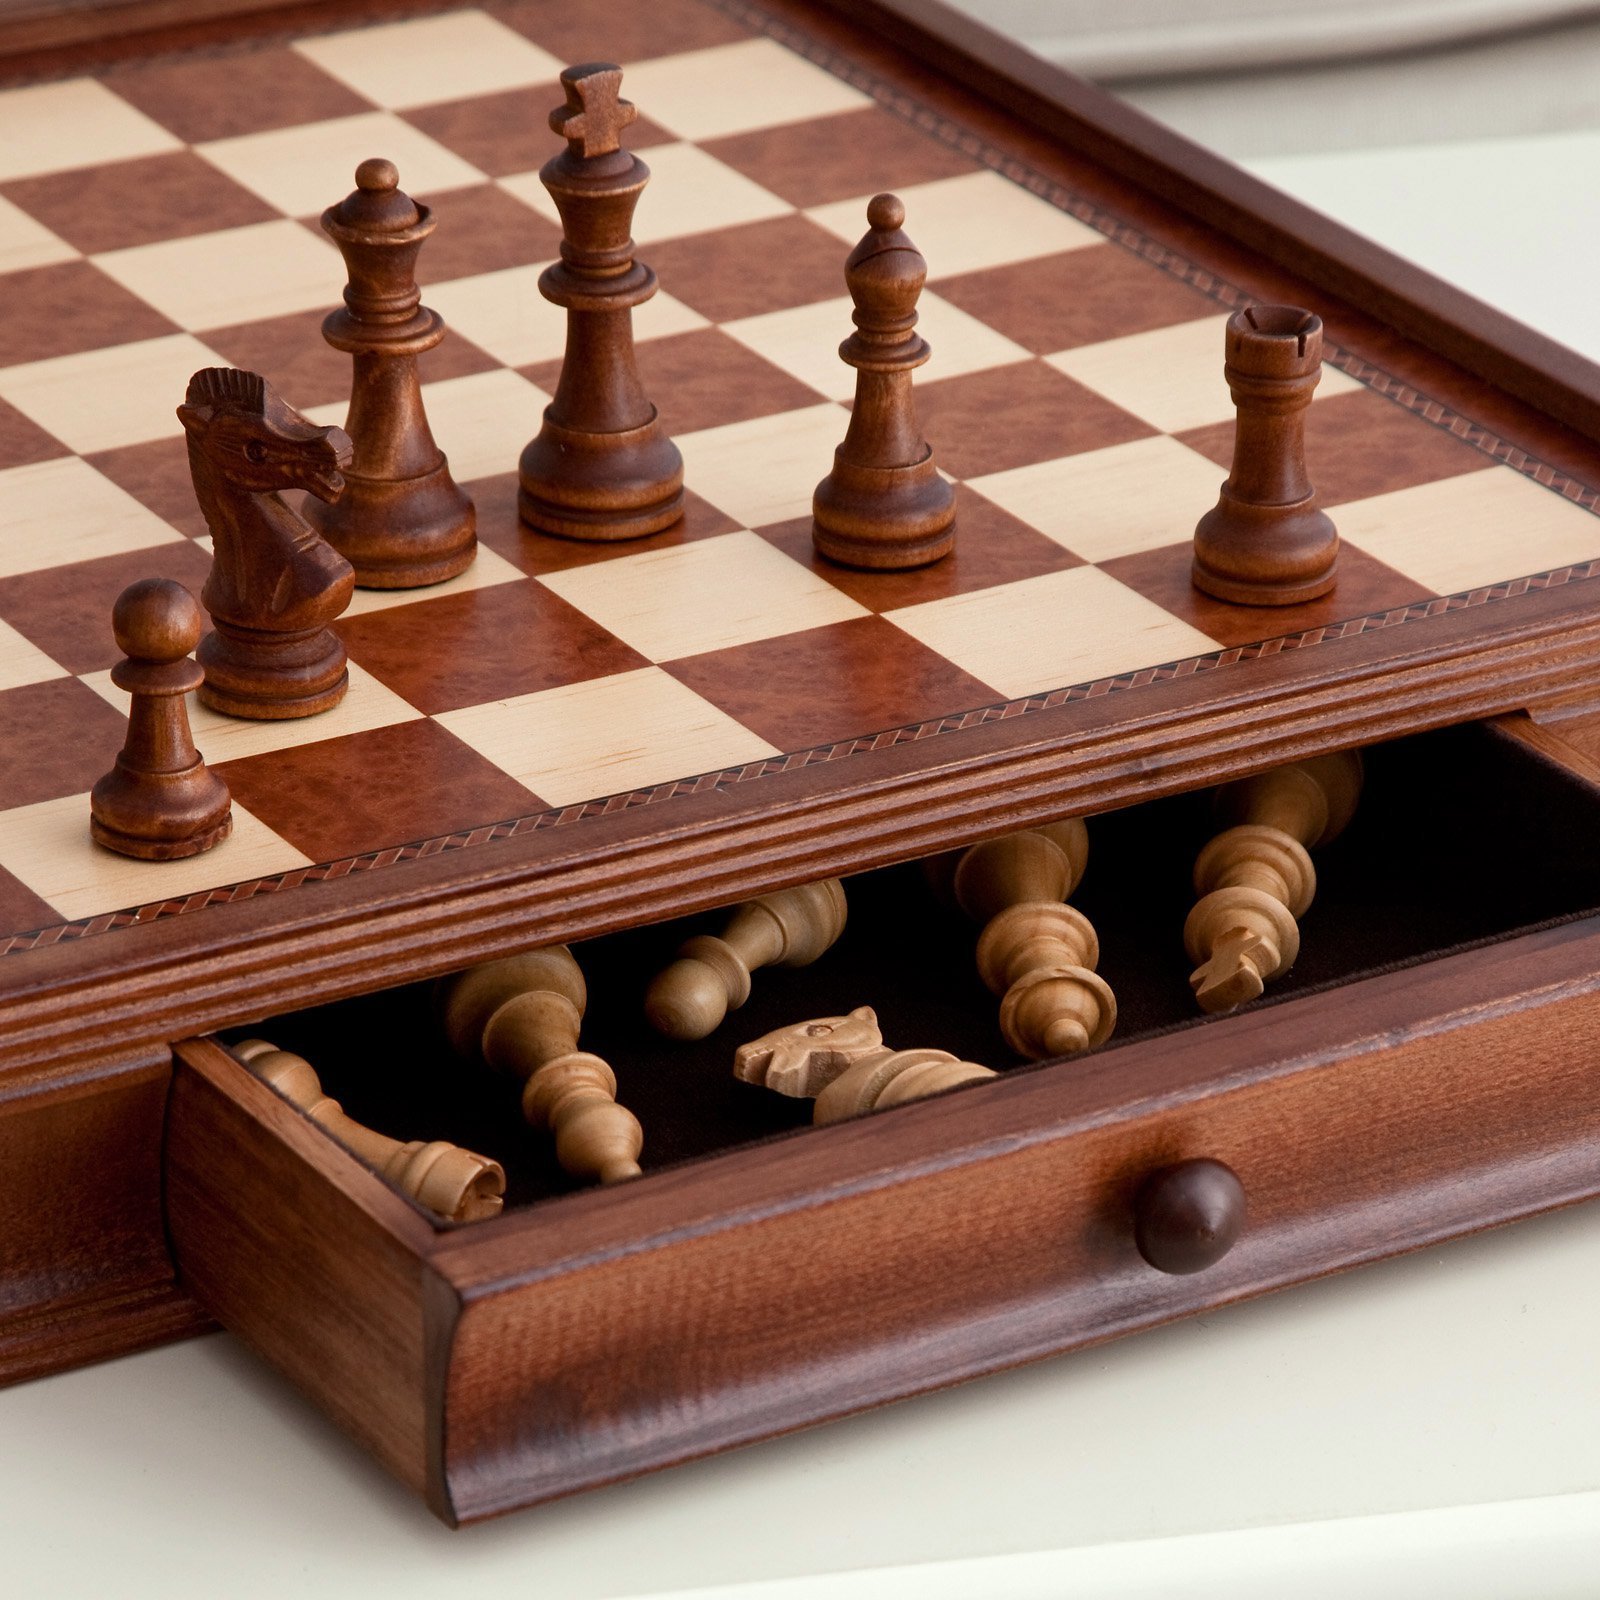 Camphor 19 in. Chess and Checkers Set with Storage by CHH